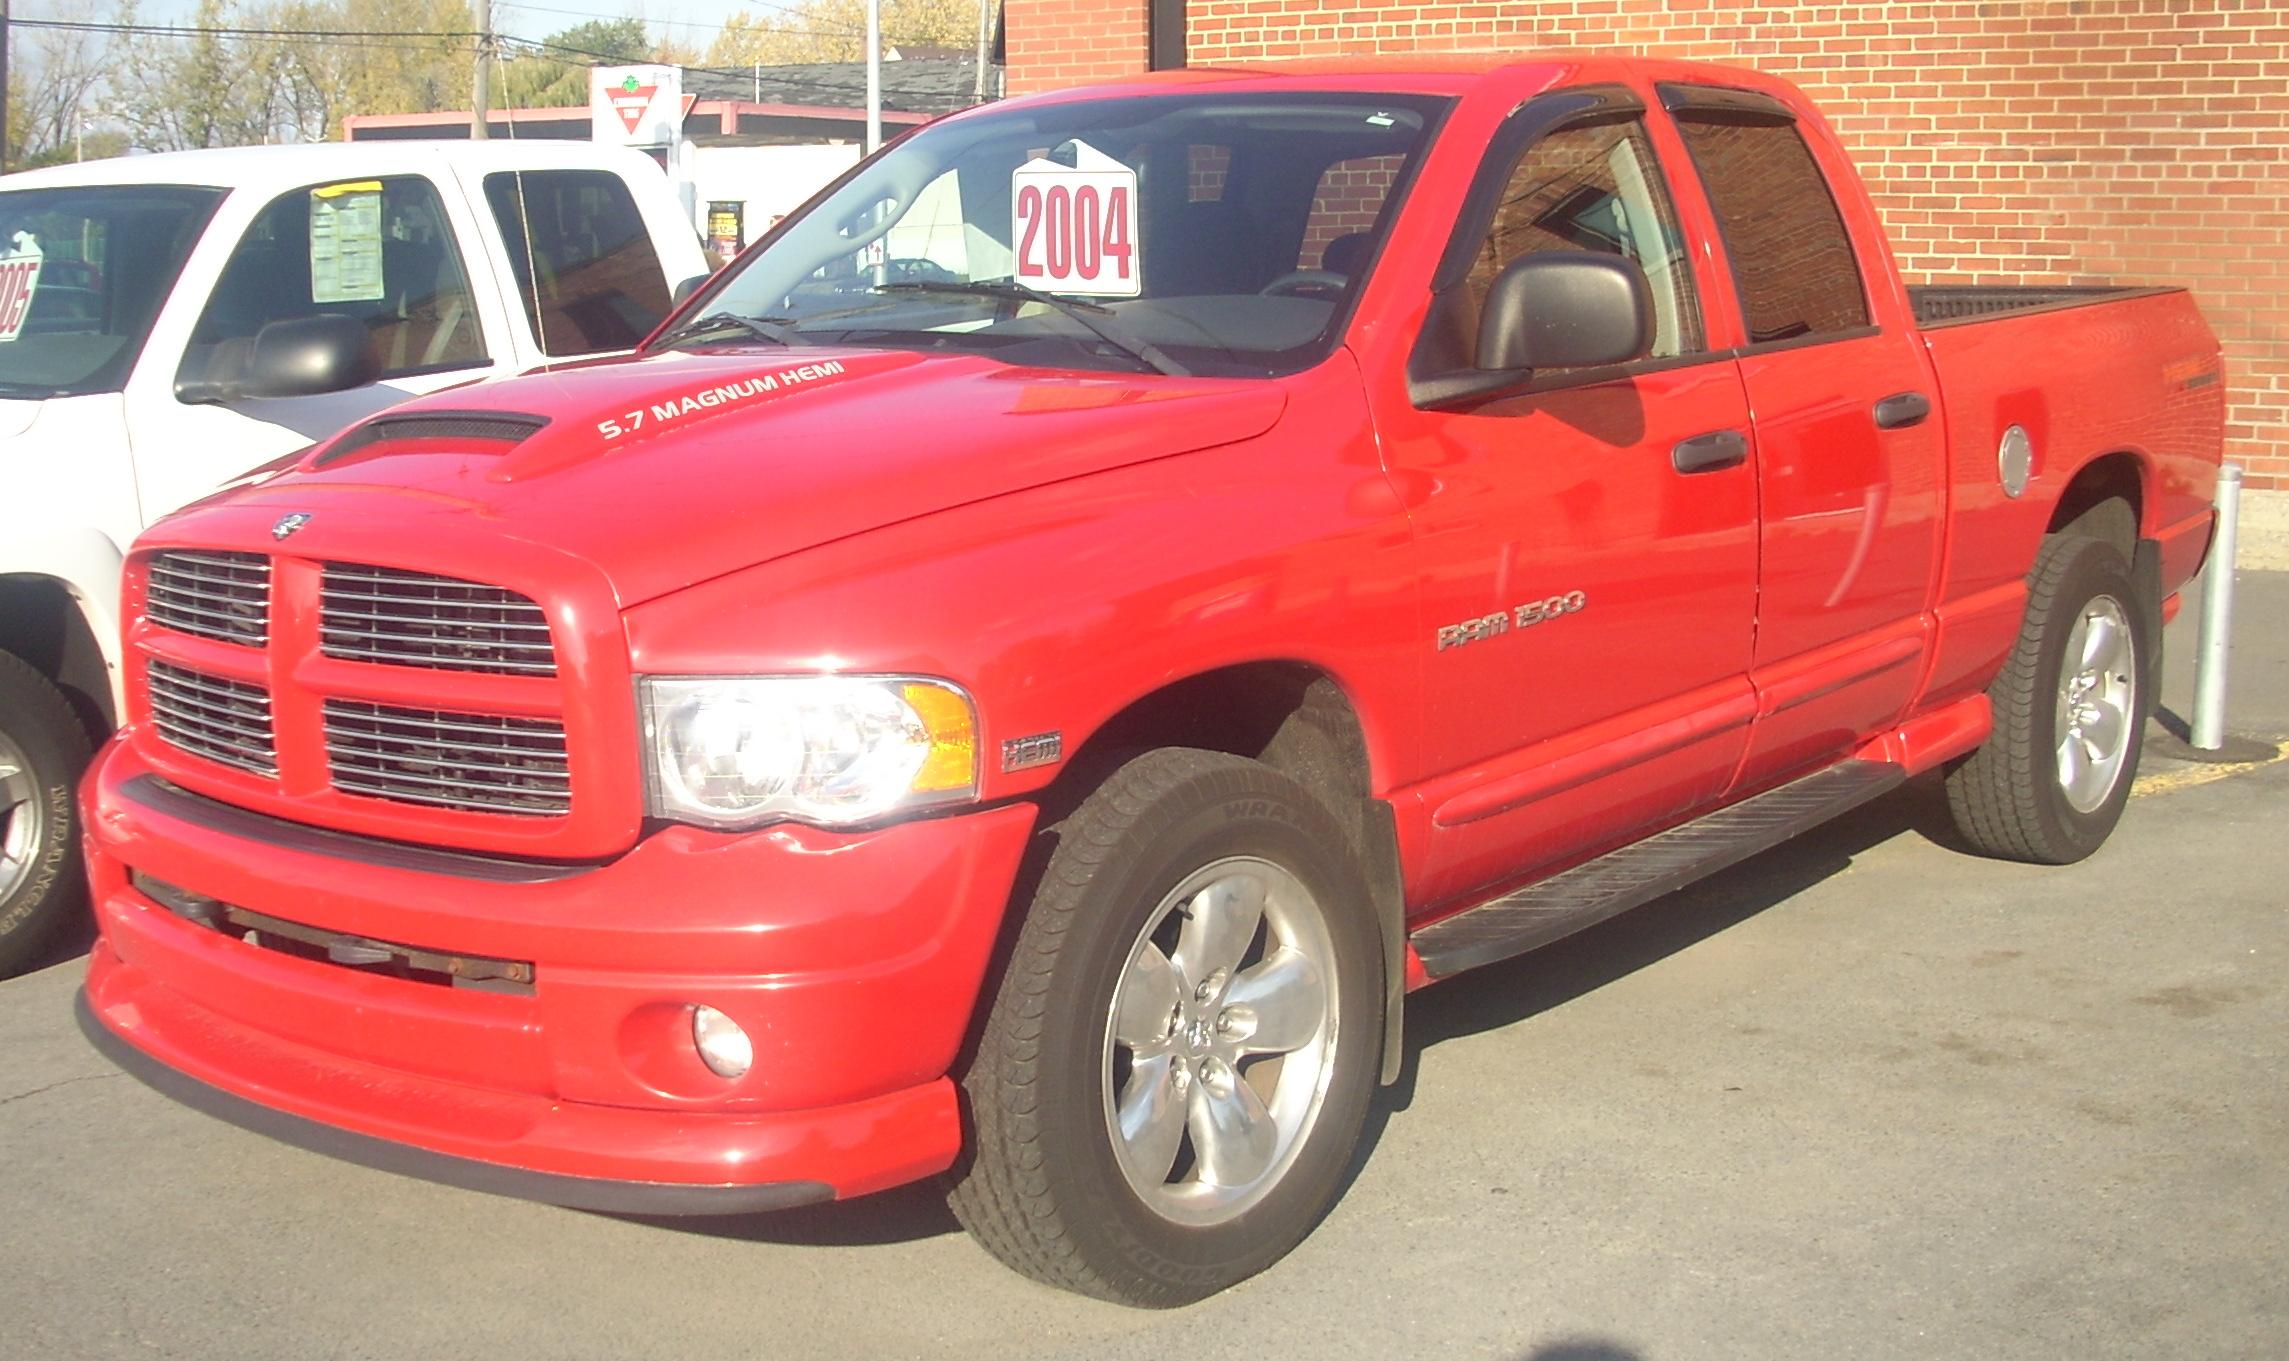 File:'04 Dodge Ram 1500 Hemi Crew Cab.JPG - Wikimedia Commons